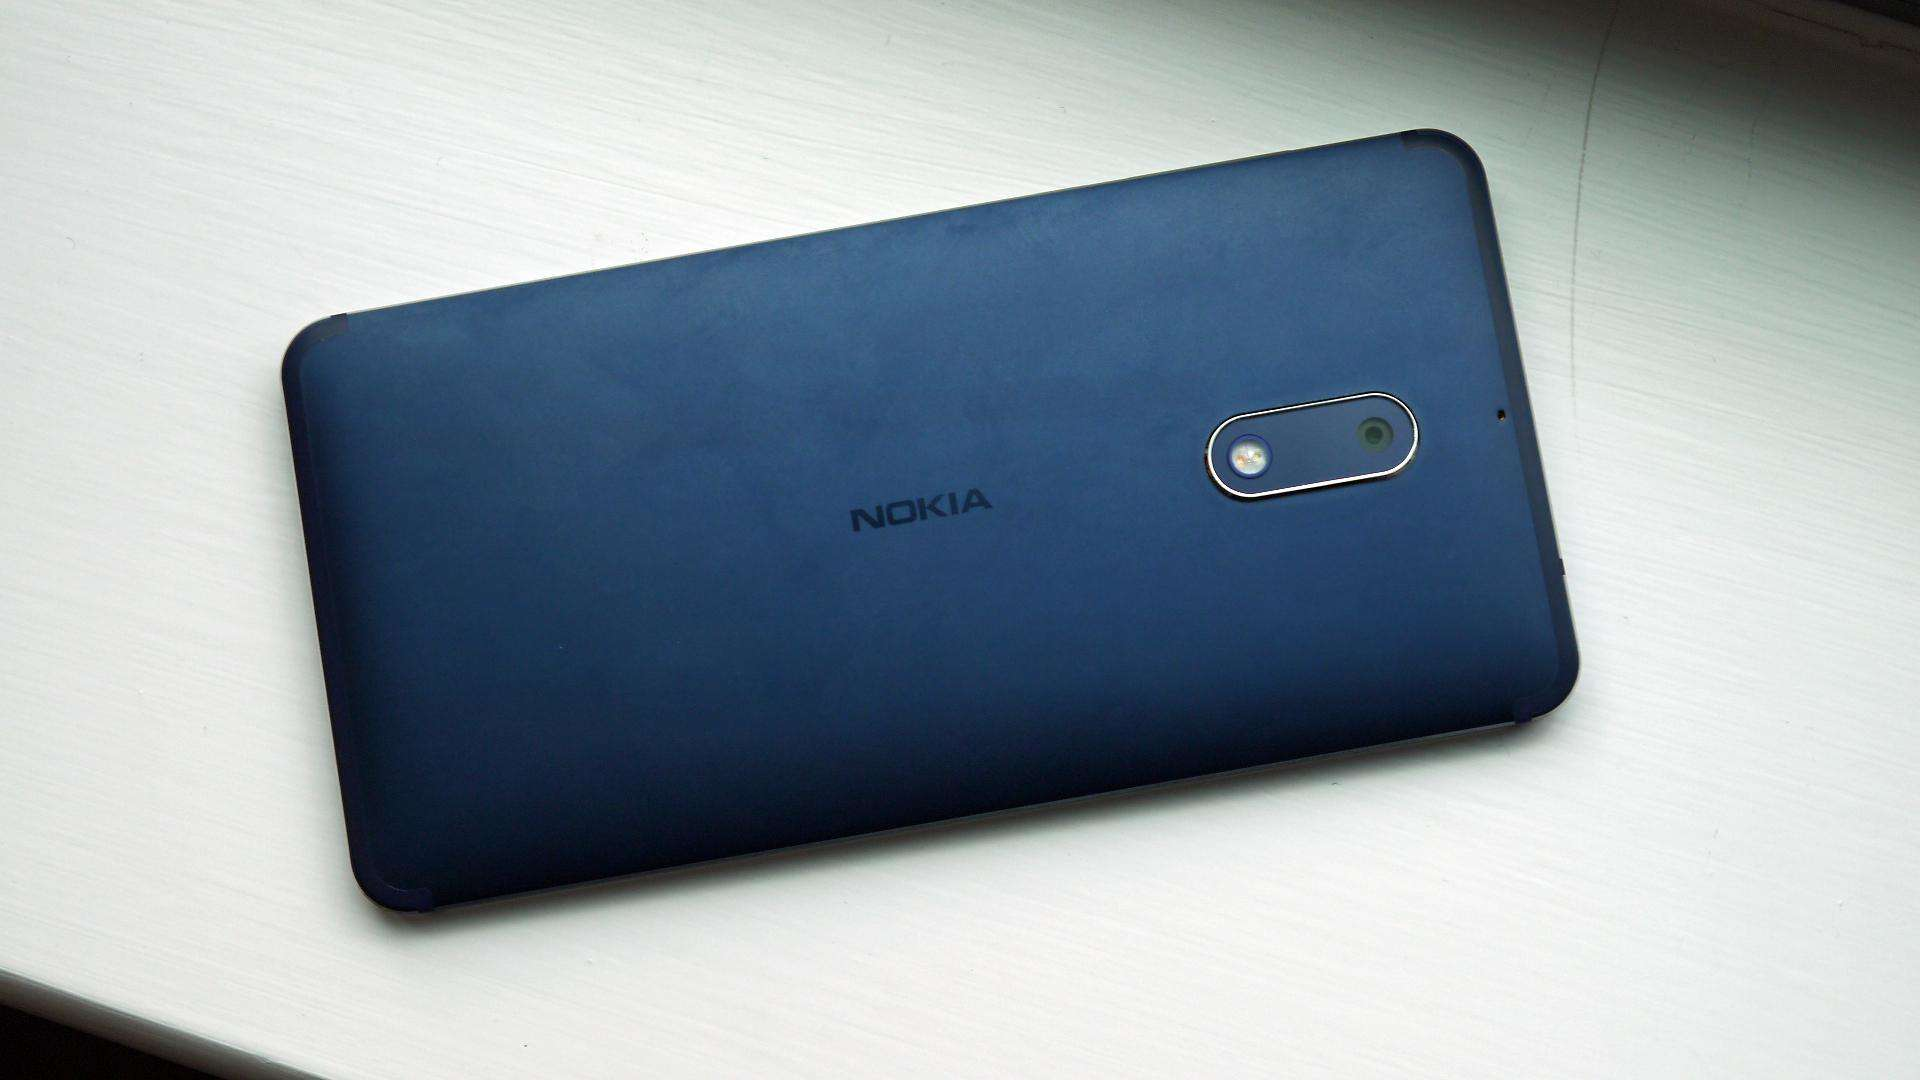 Nokia 9 and nokia 6 2018 get certifications to launch in nokia 9 and nokia 6 2018 get certifications to launch in january gadgets now 1betcityfo Choice Image